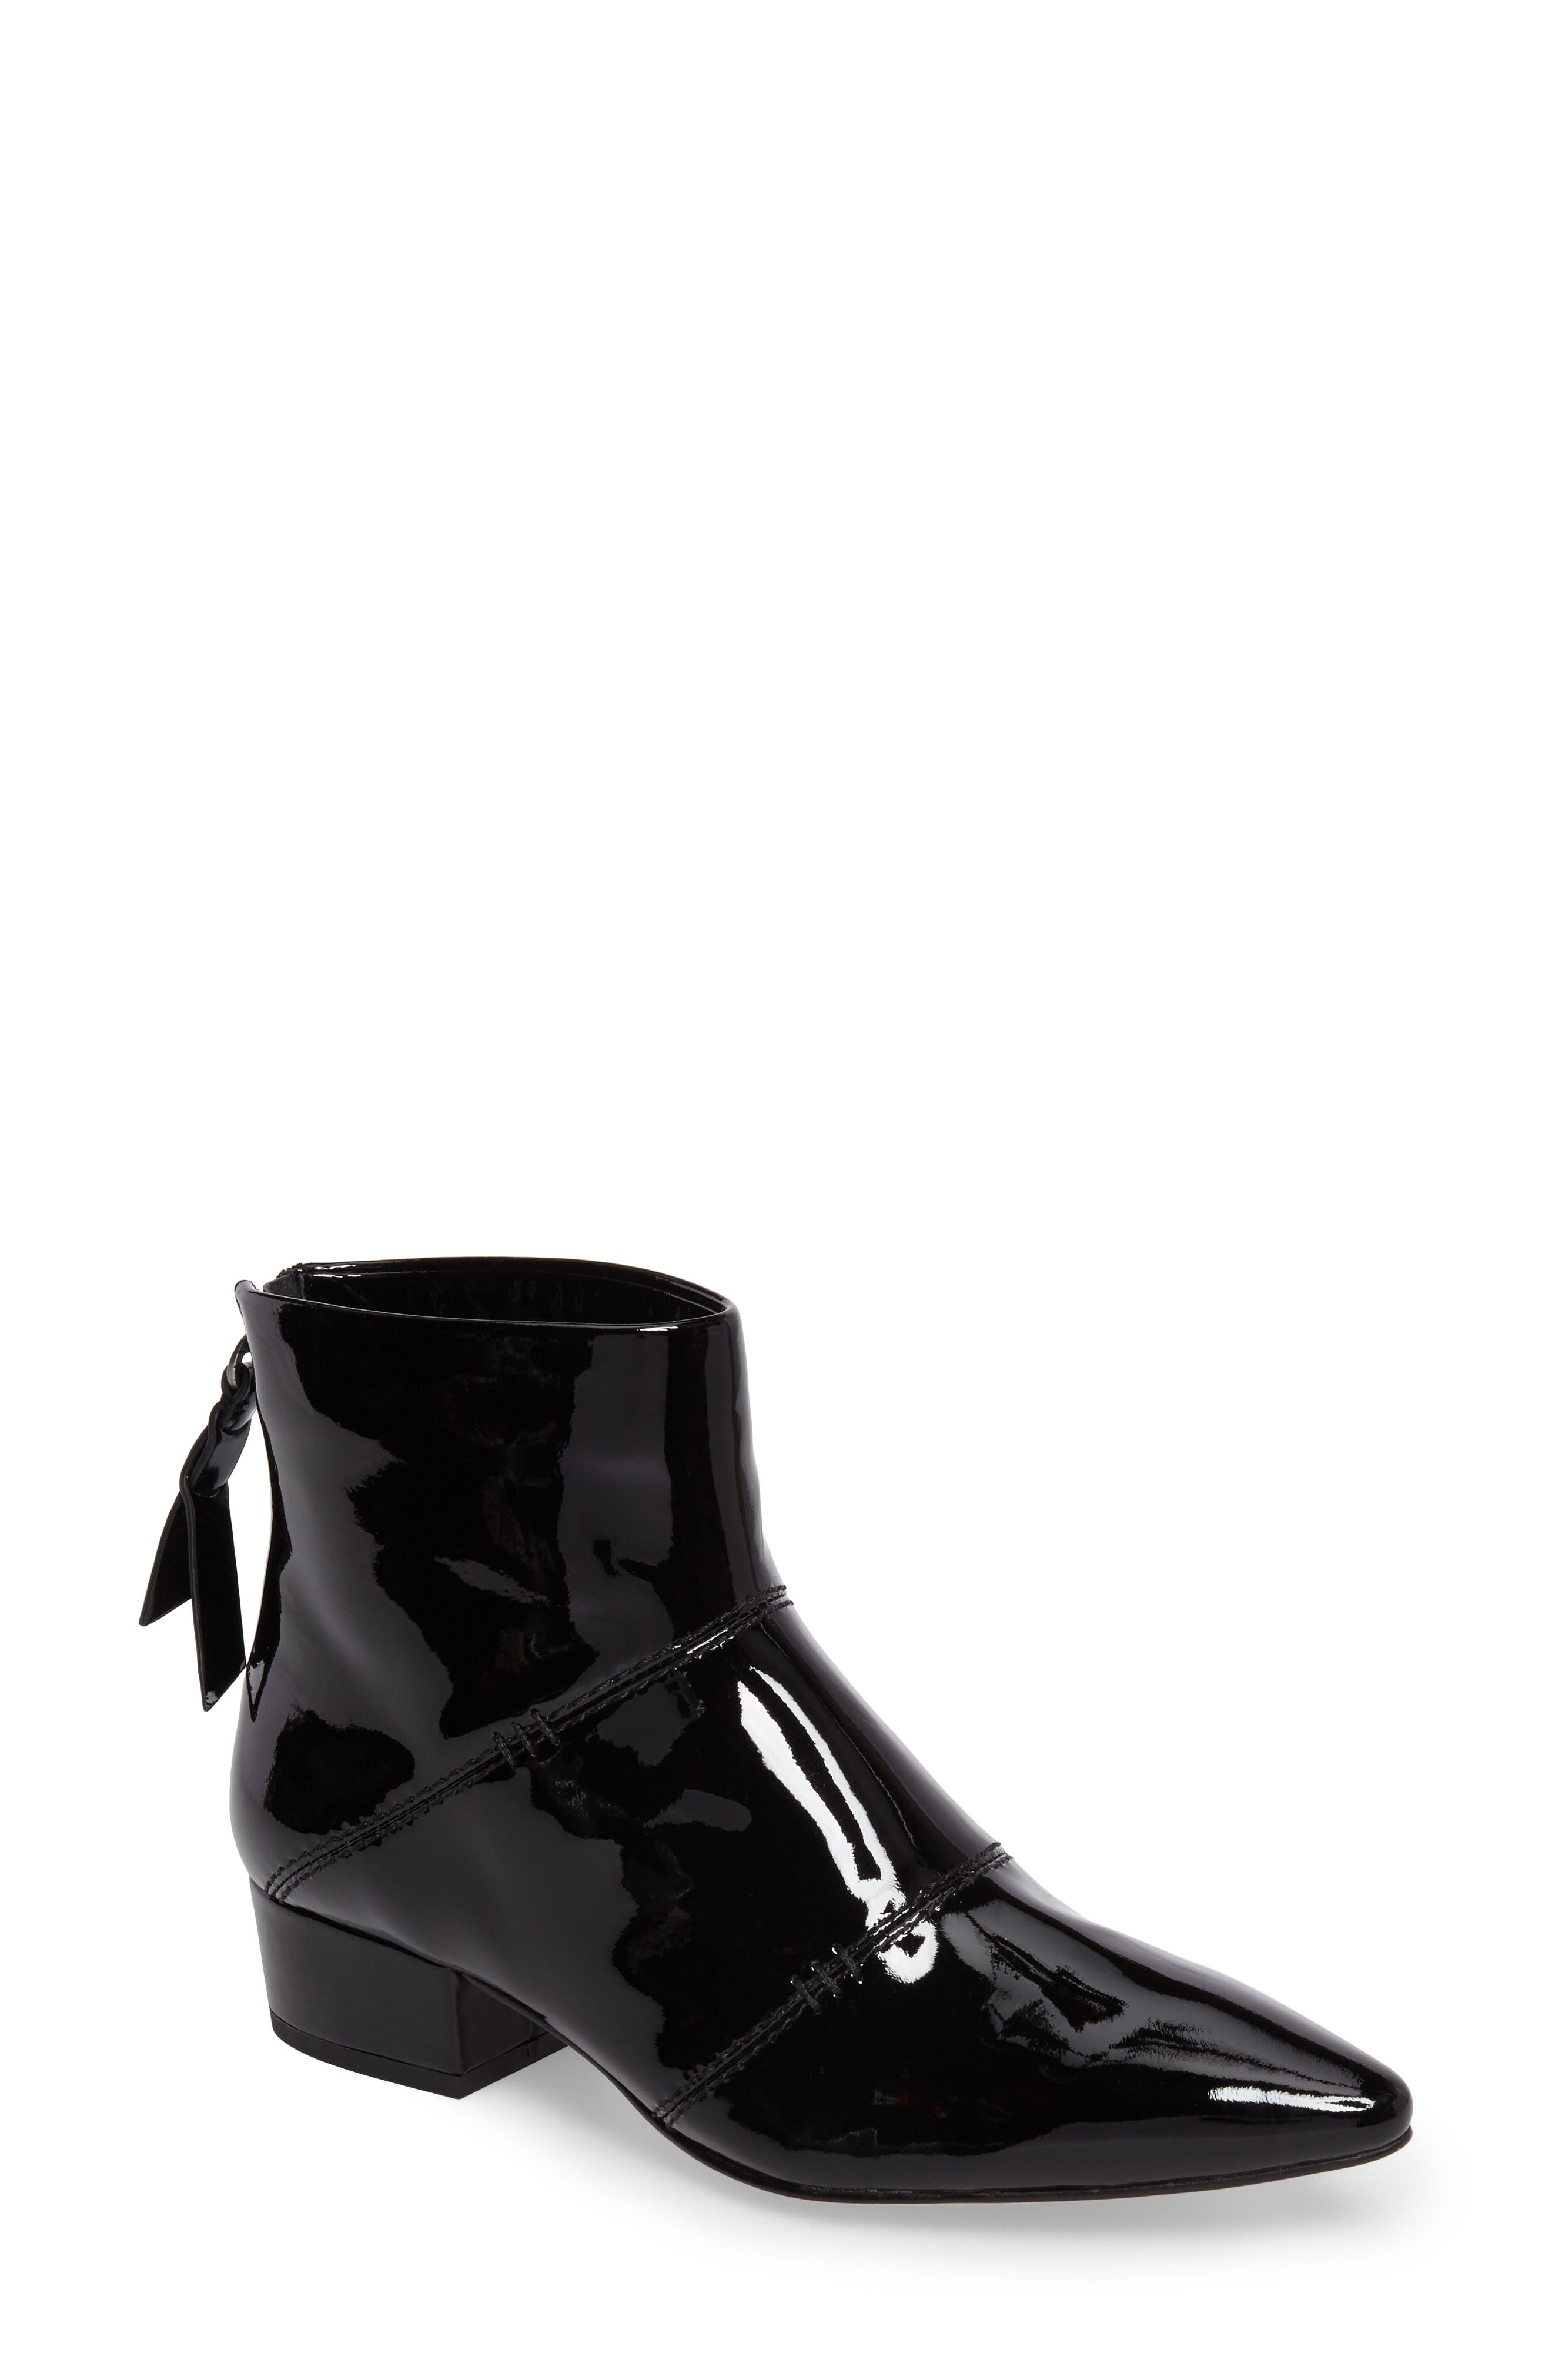 Rina Bootie,                         Main,                         color, Black Patent